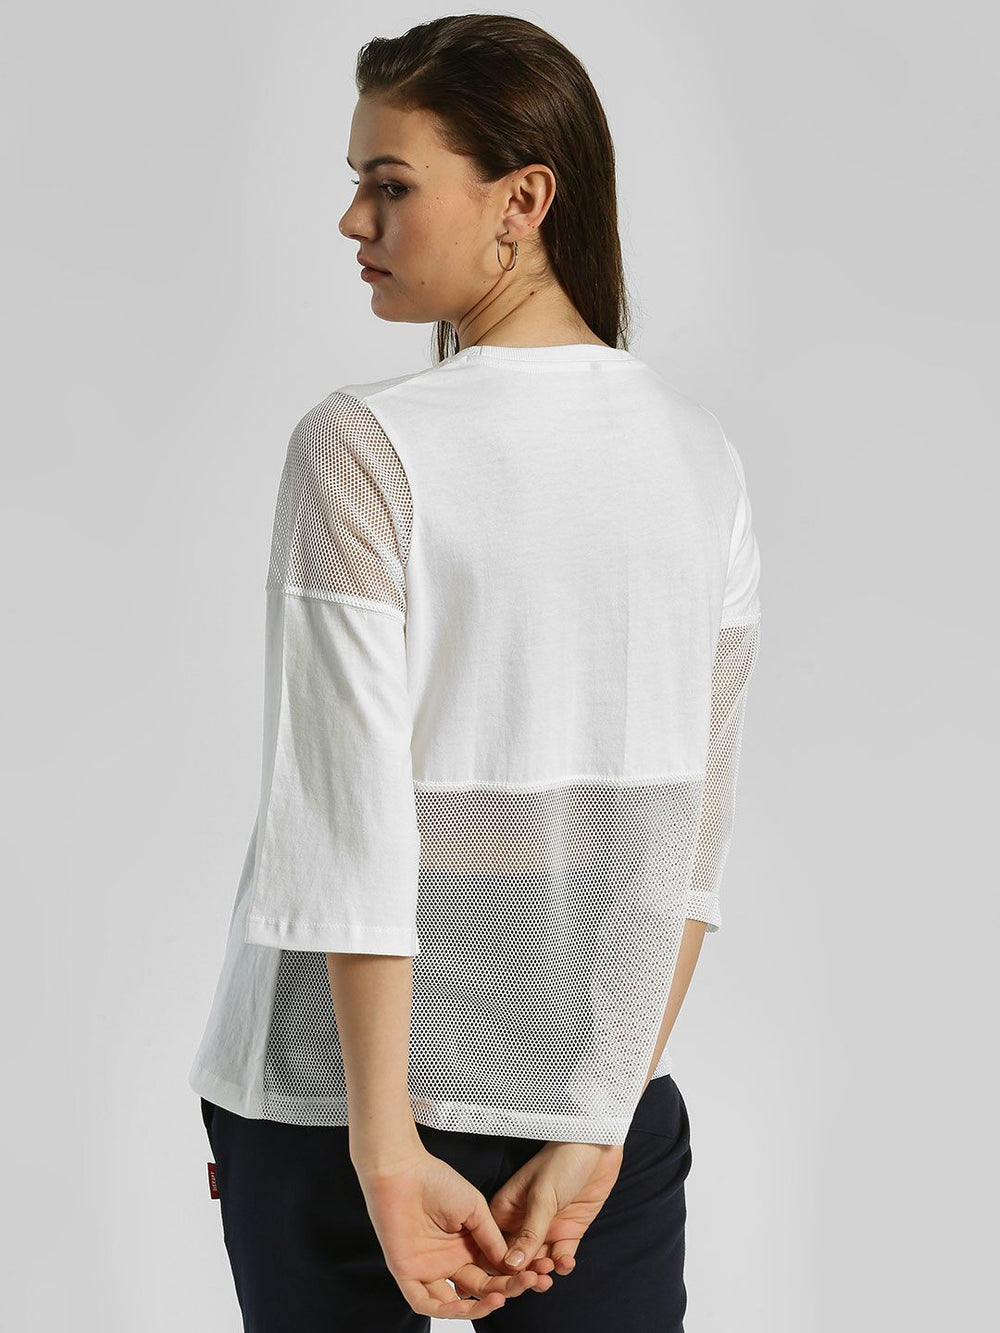 White Cotton N Mesh Loose Fit T-shirt